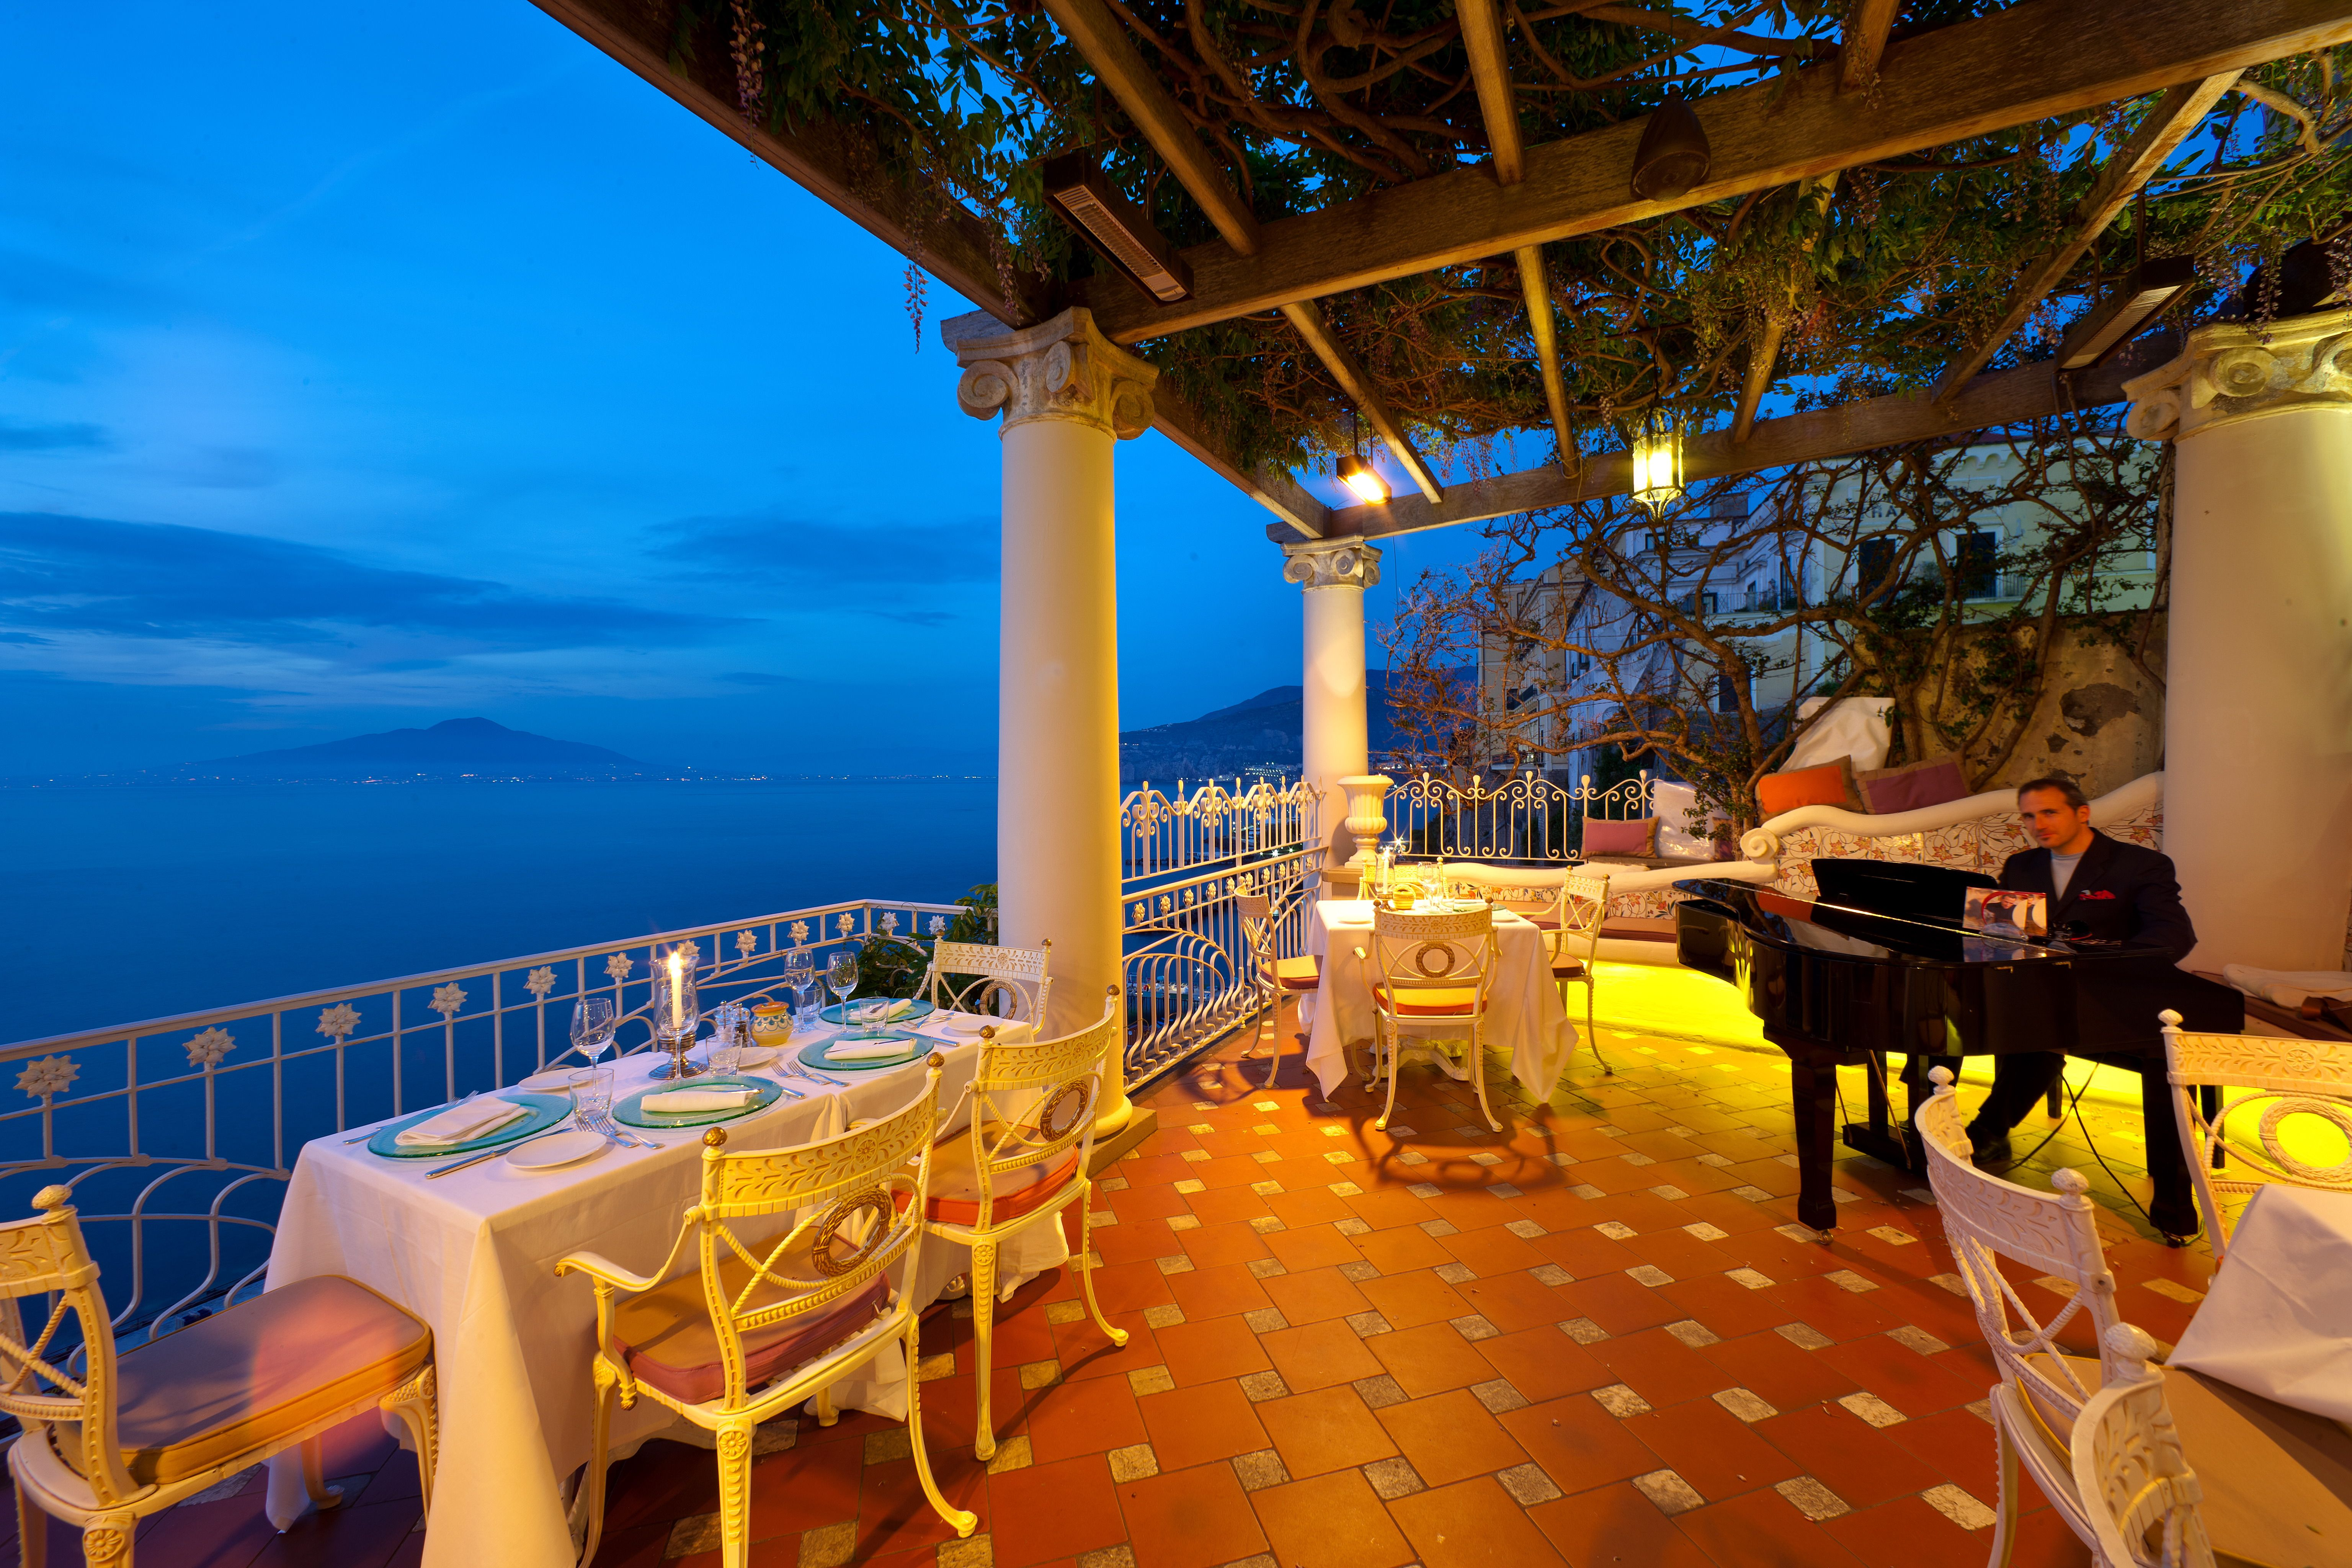 A romantic dinner in Sorrento at Bellevue's restaurant